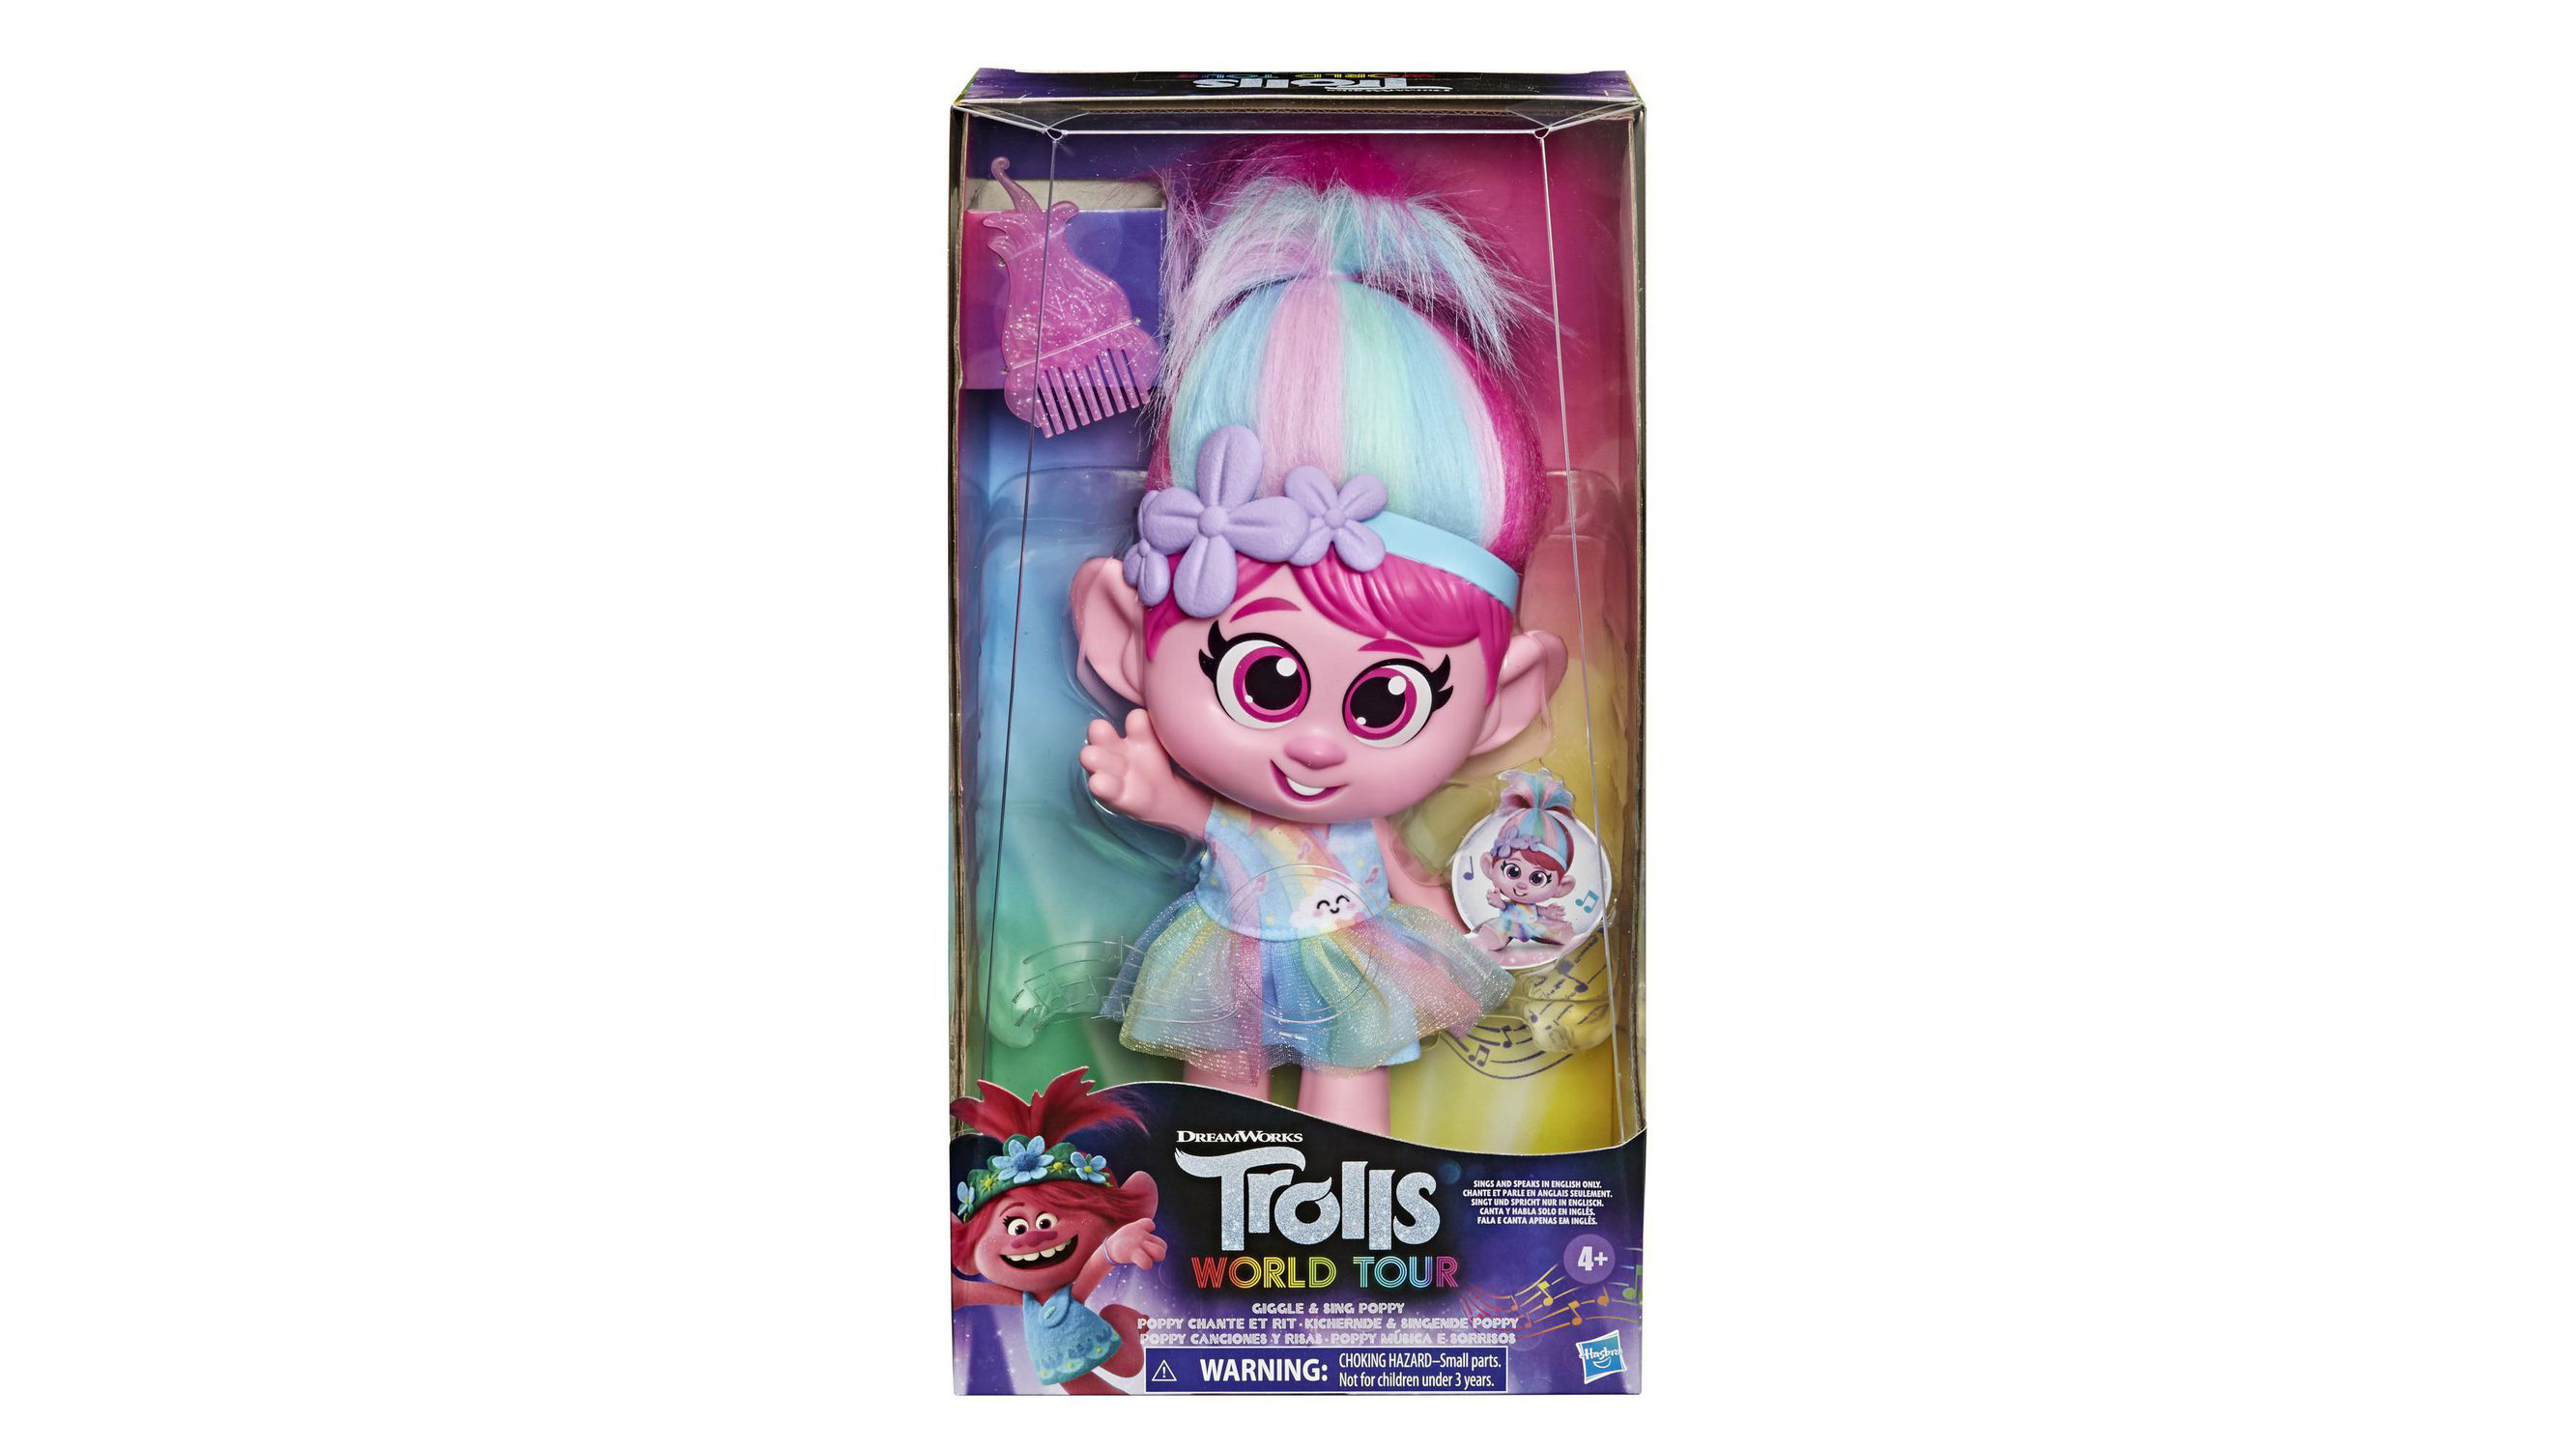 Hasbro is removing Trolls doll from stores amid complaints that button is inappropriately placed